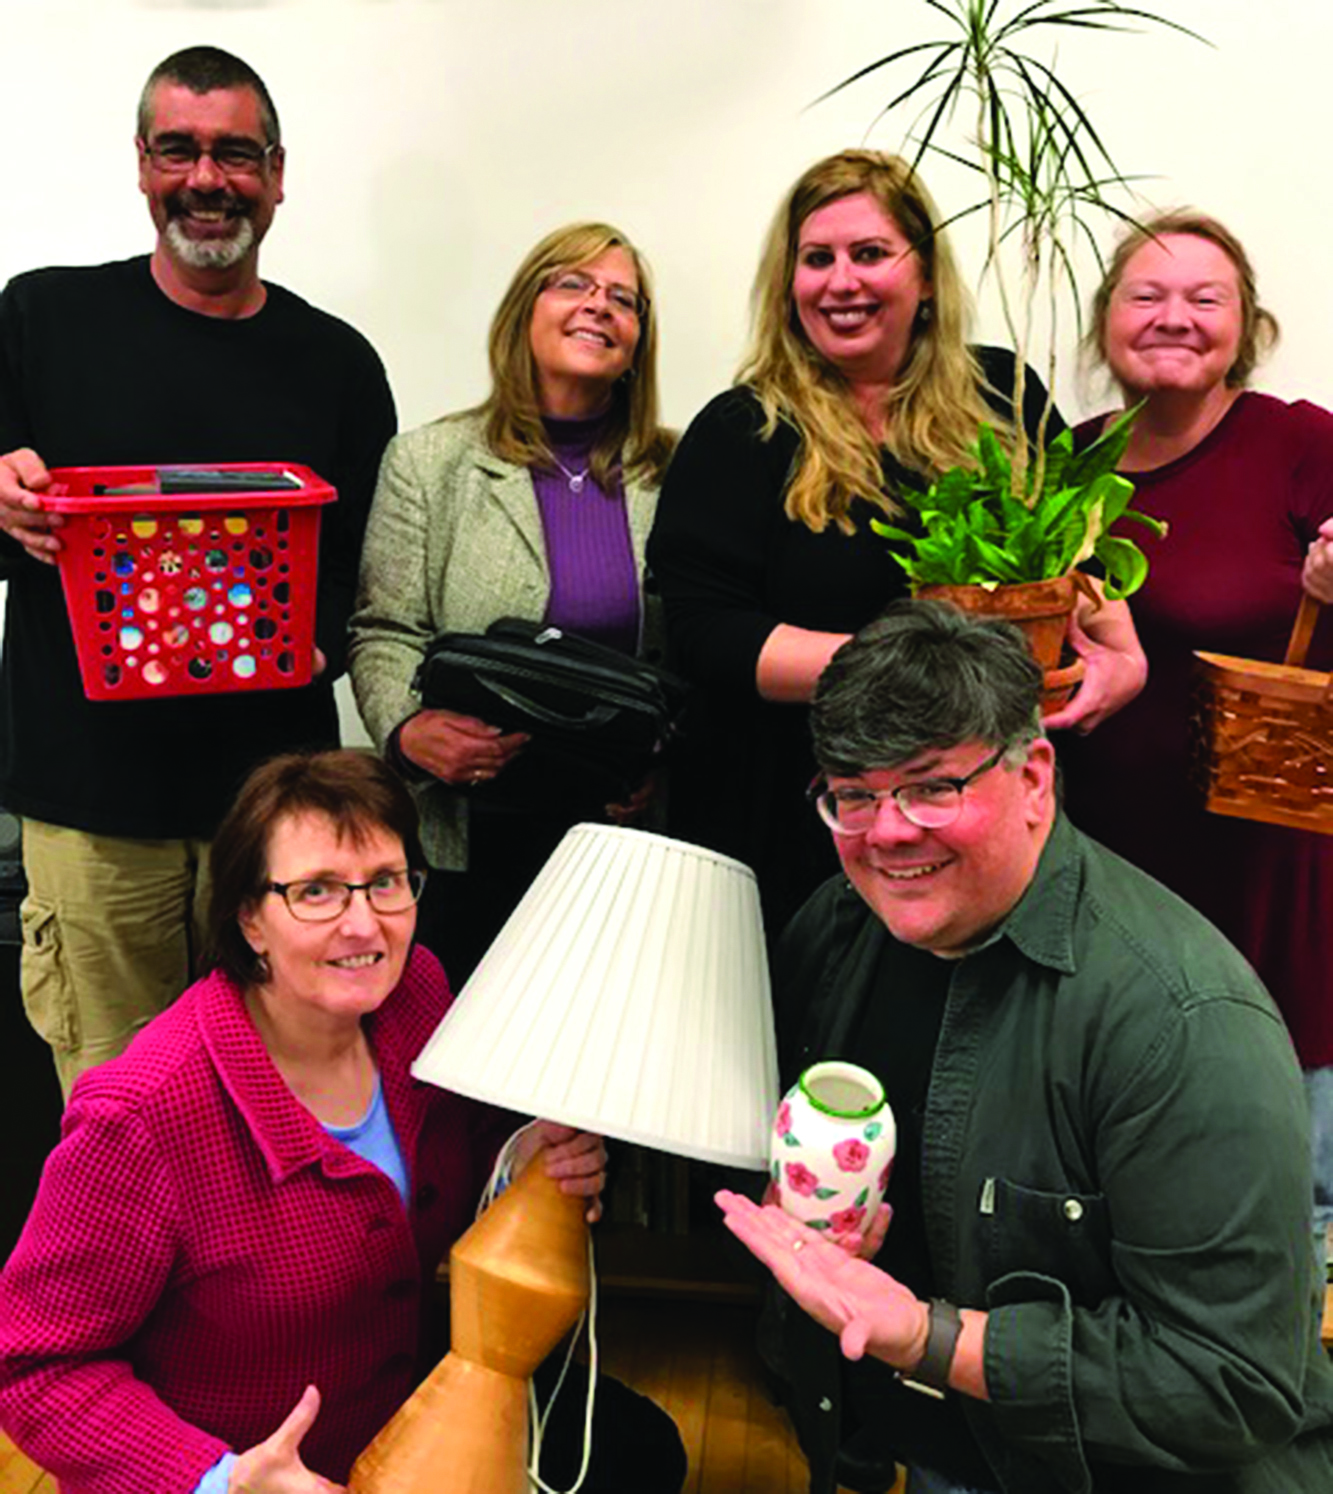 MSAD 52 annual auction will benefit RCAM - Maine News